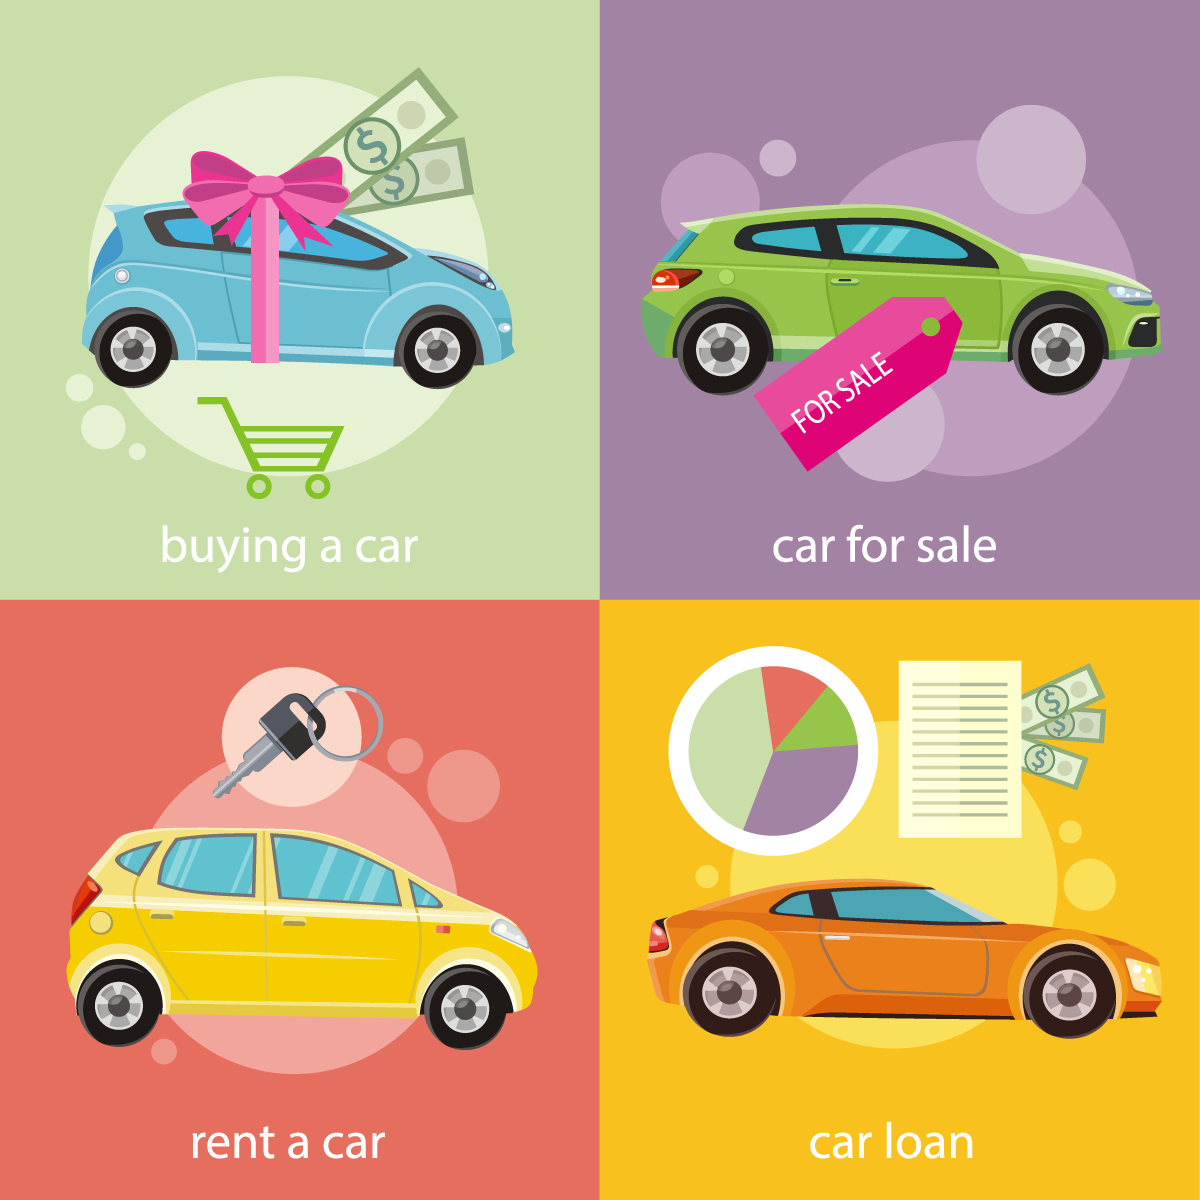 a primer on leasing vs buying